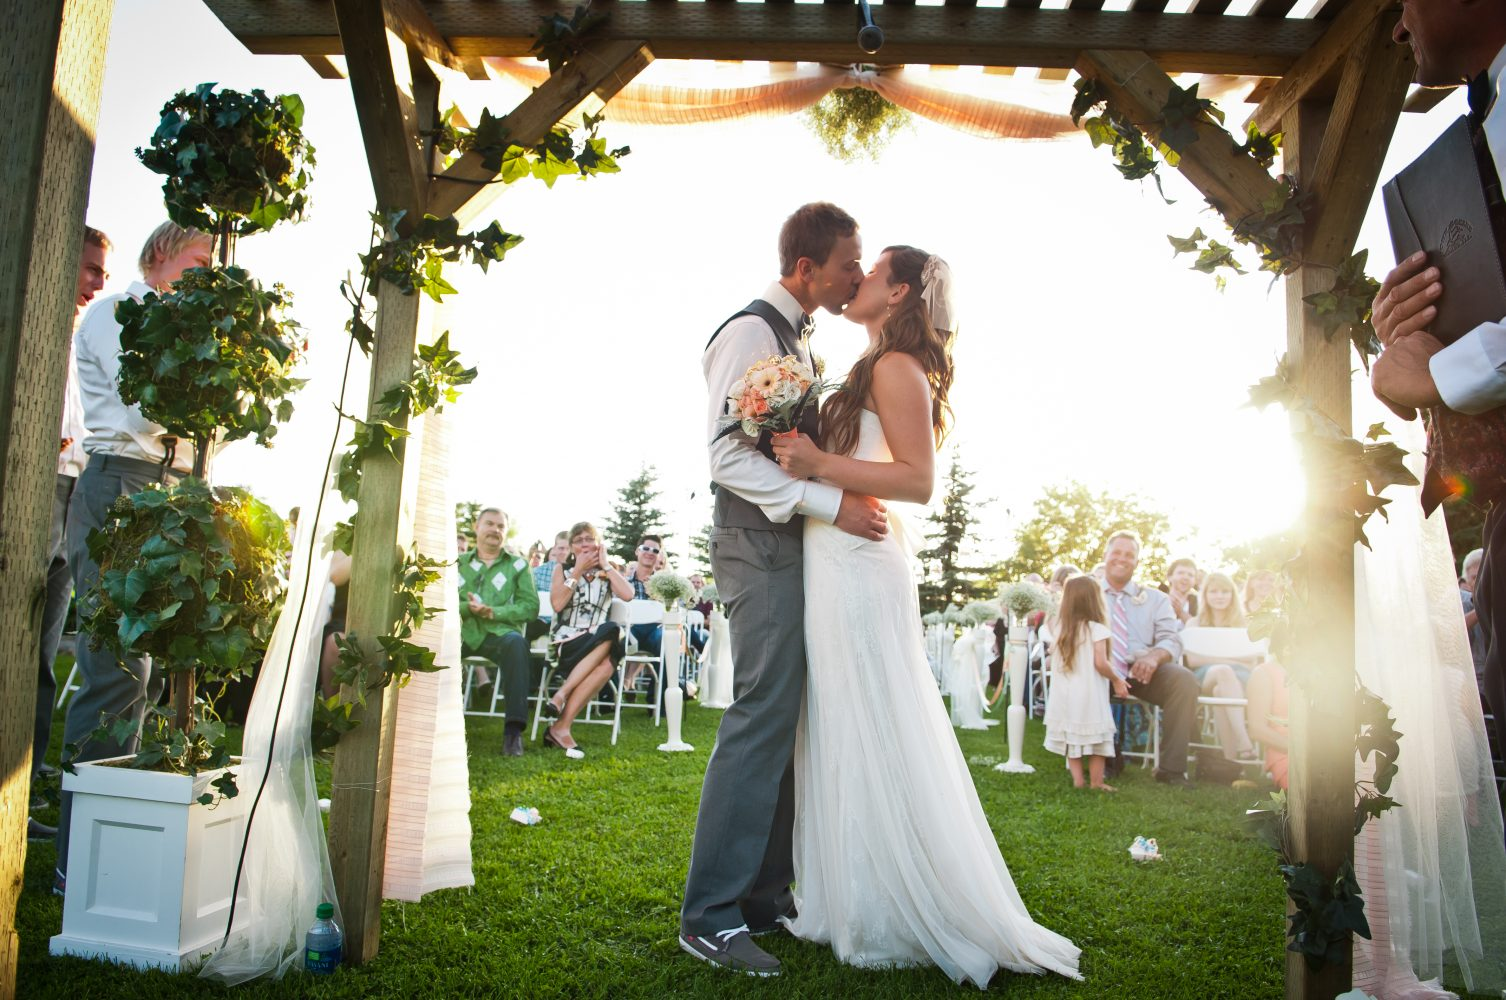 A farm wedding kiss at sunset in Rural Alberta, I now pronounce you Husband and Wife | 3Haus Photographics